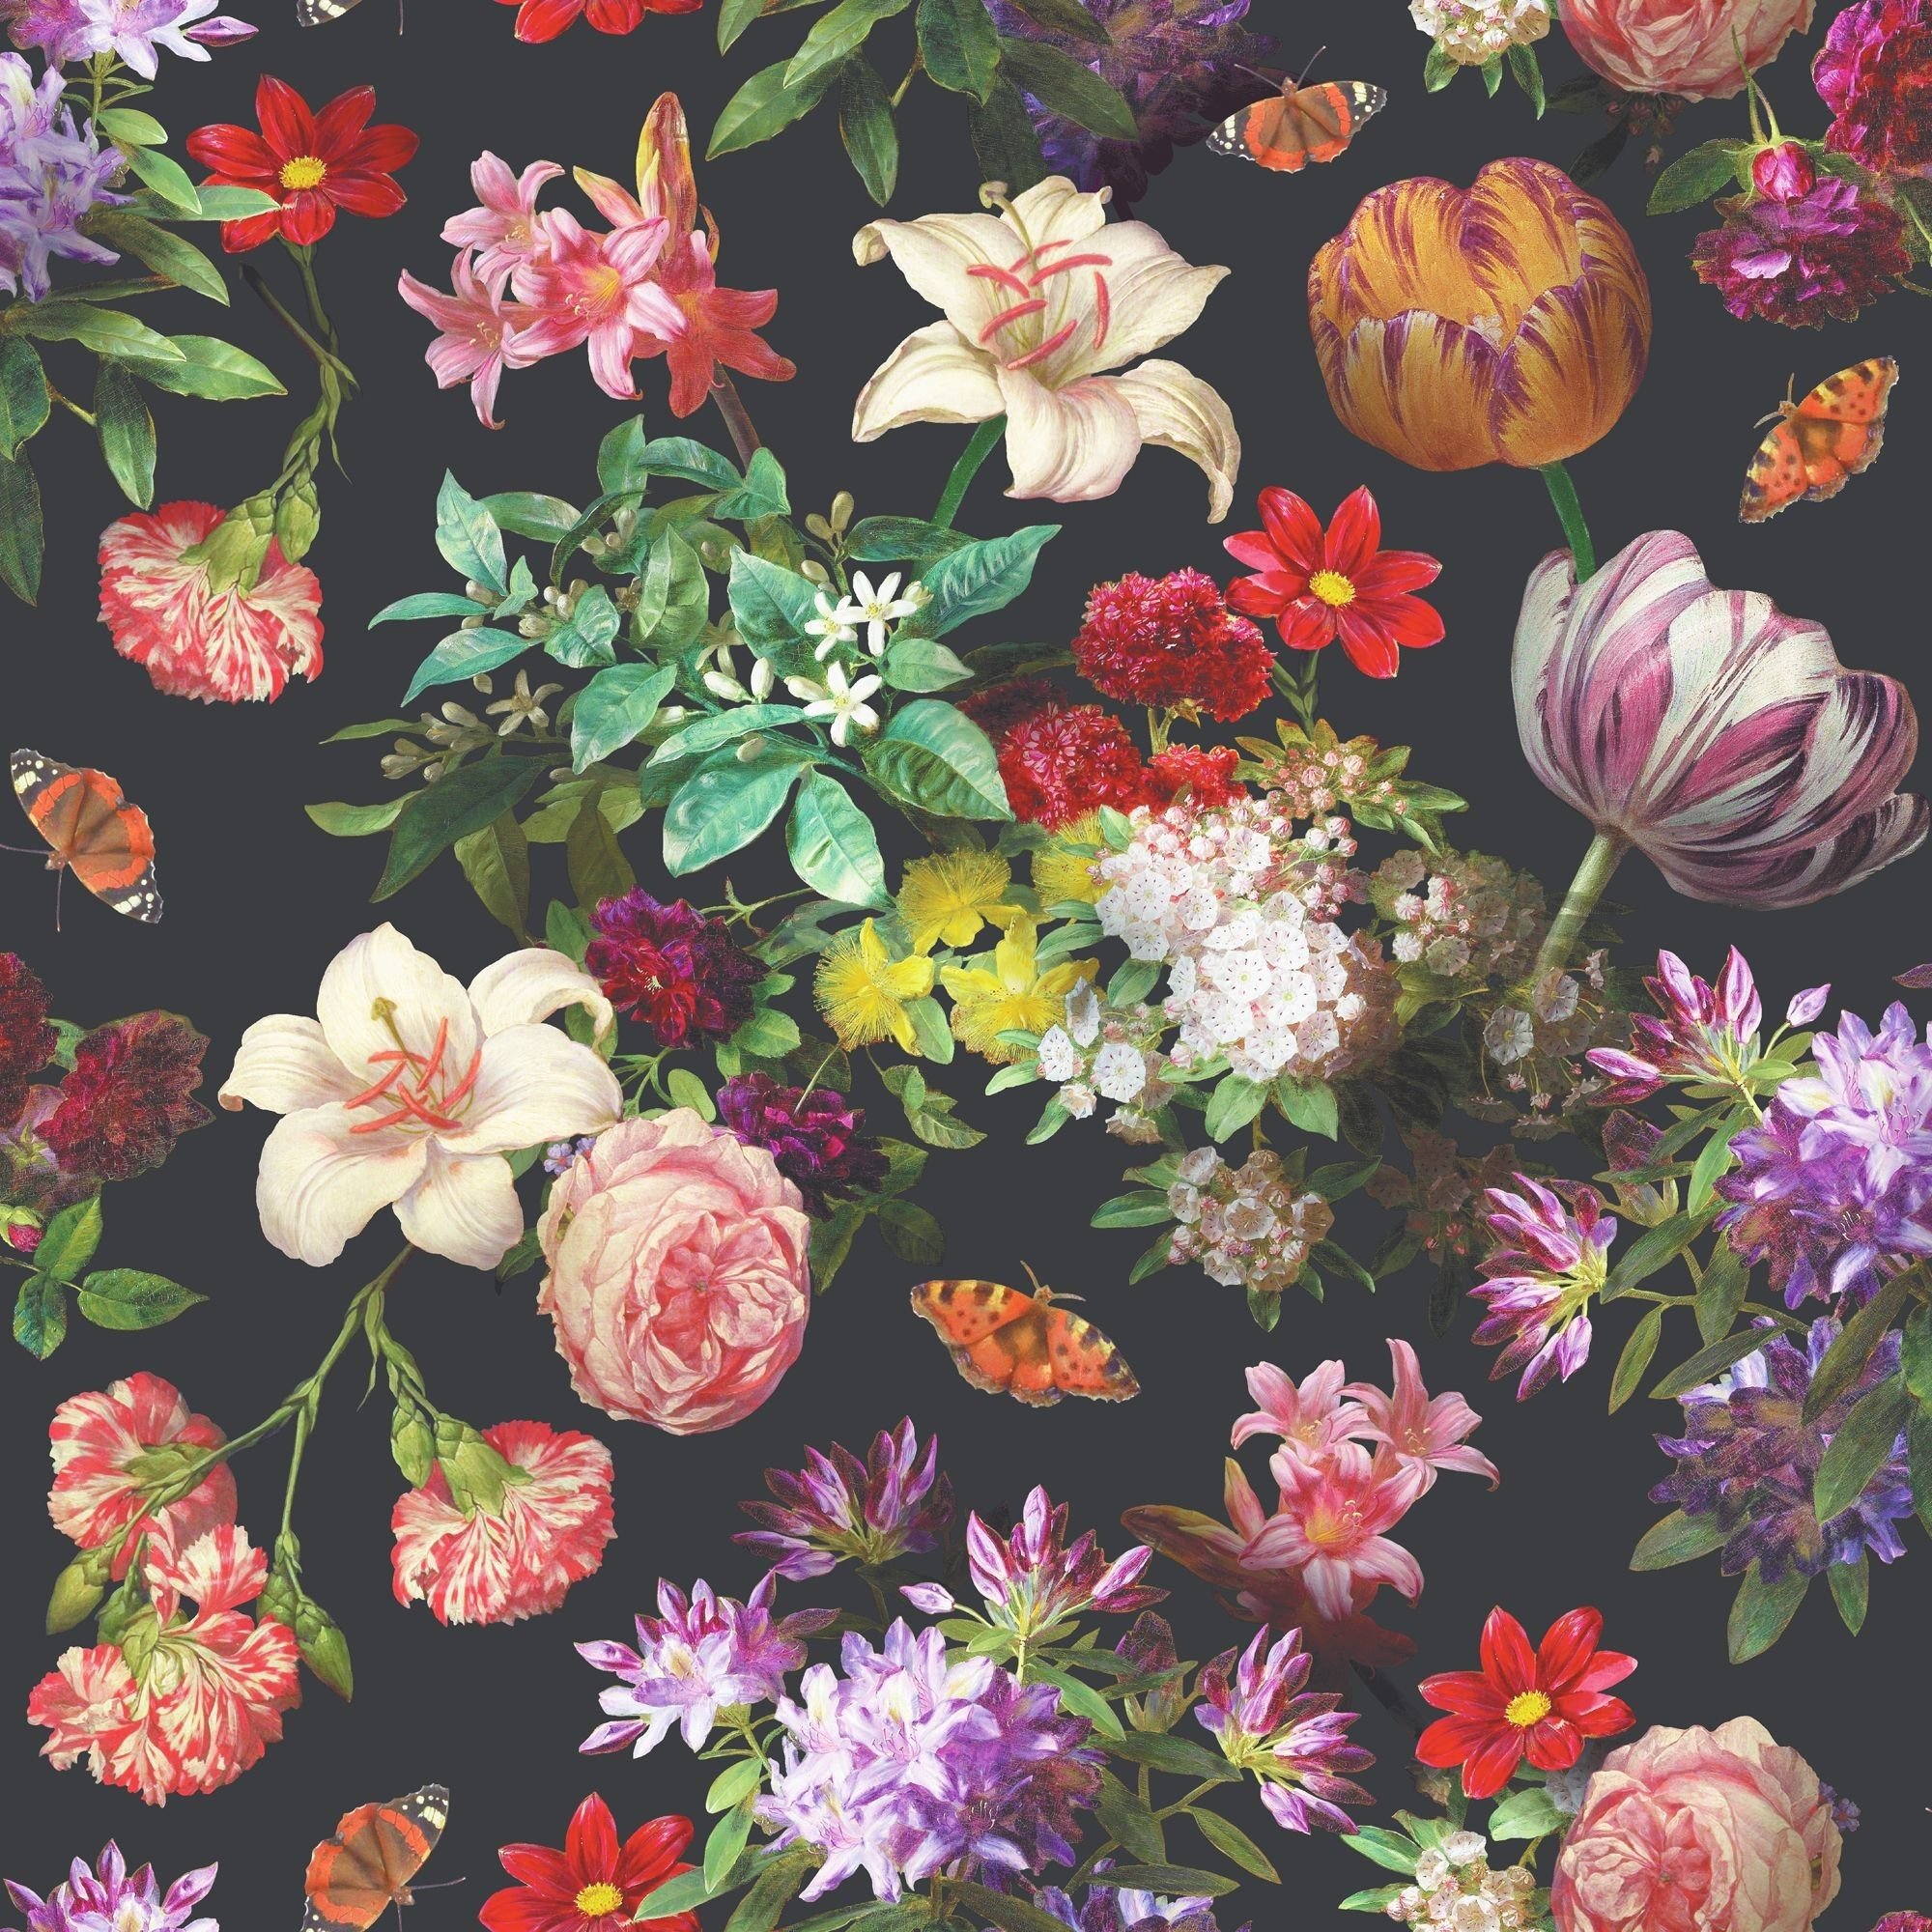 Aesthetic Vintage Plant Wallpapers Wallpaper Cave